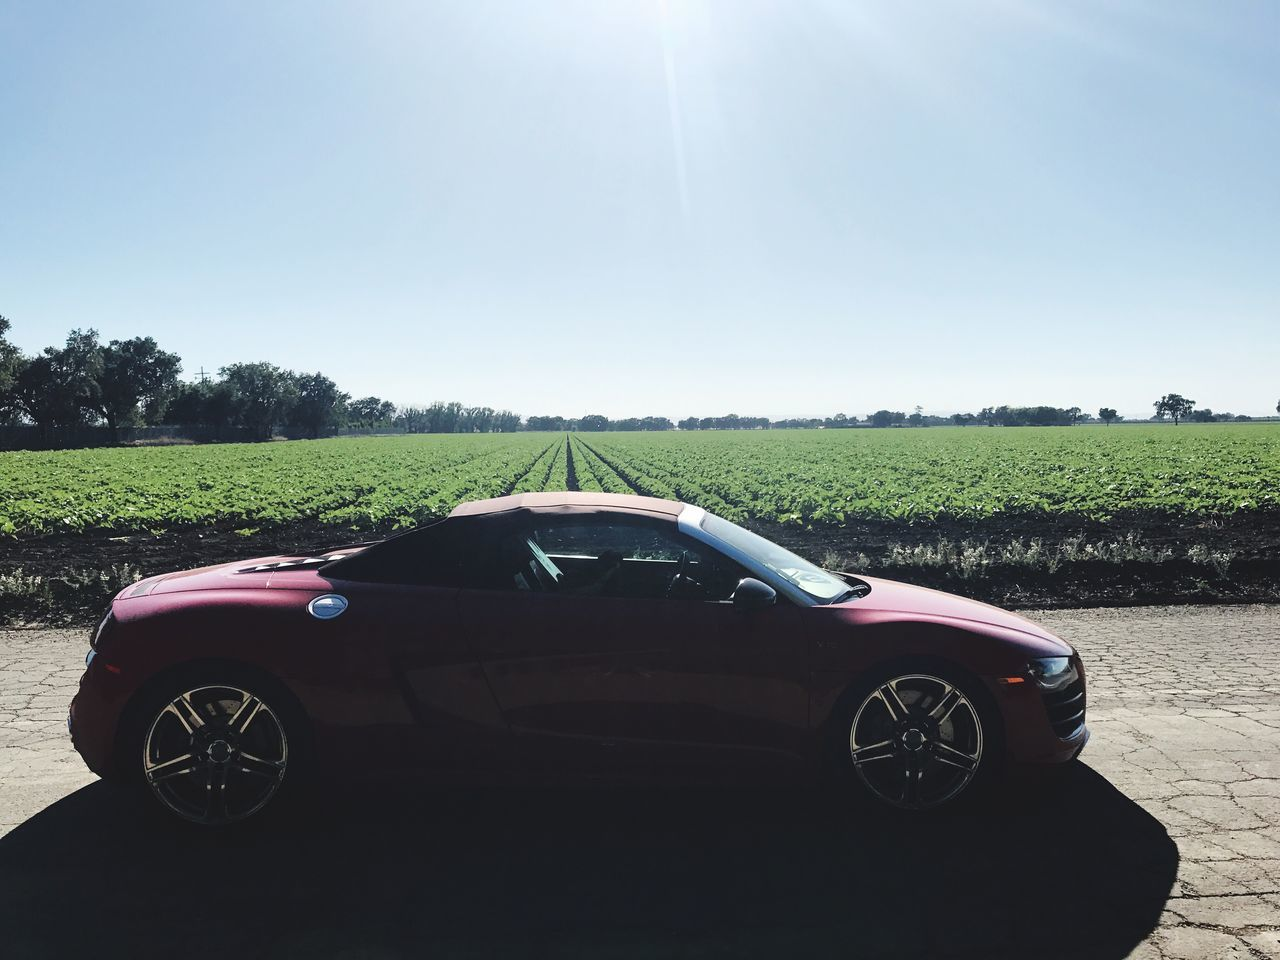 Field Growth Day Landscape Agriculture Transportation Nature Plant No People Clear Sky Outdoors Sky Supercar Audi R8 Spyder Car Auto